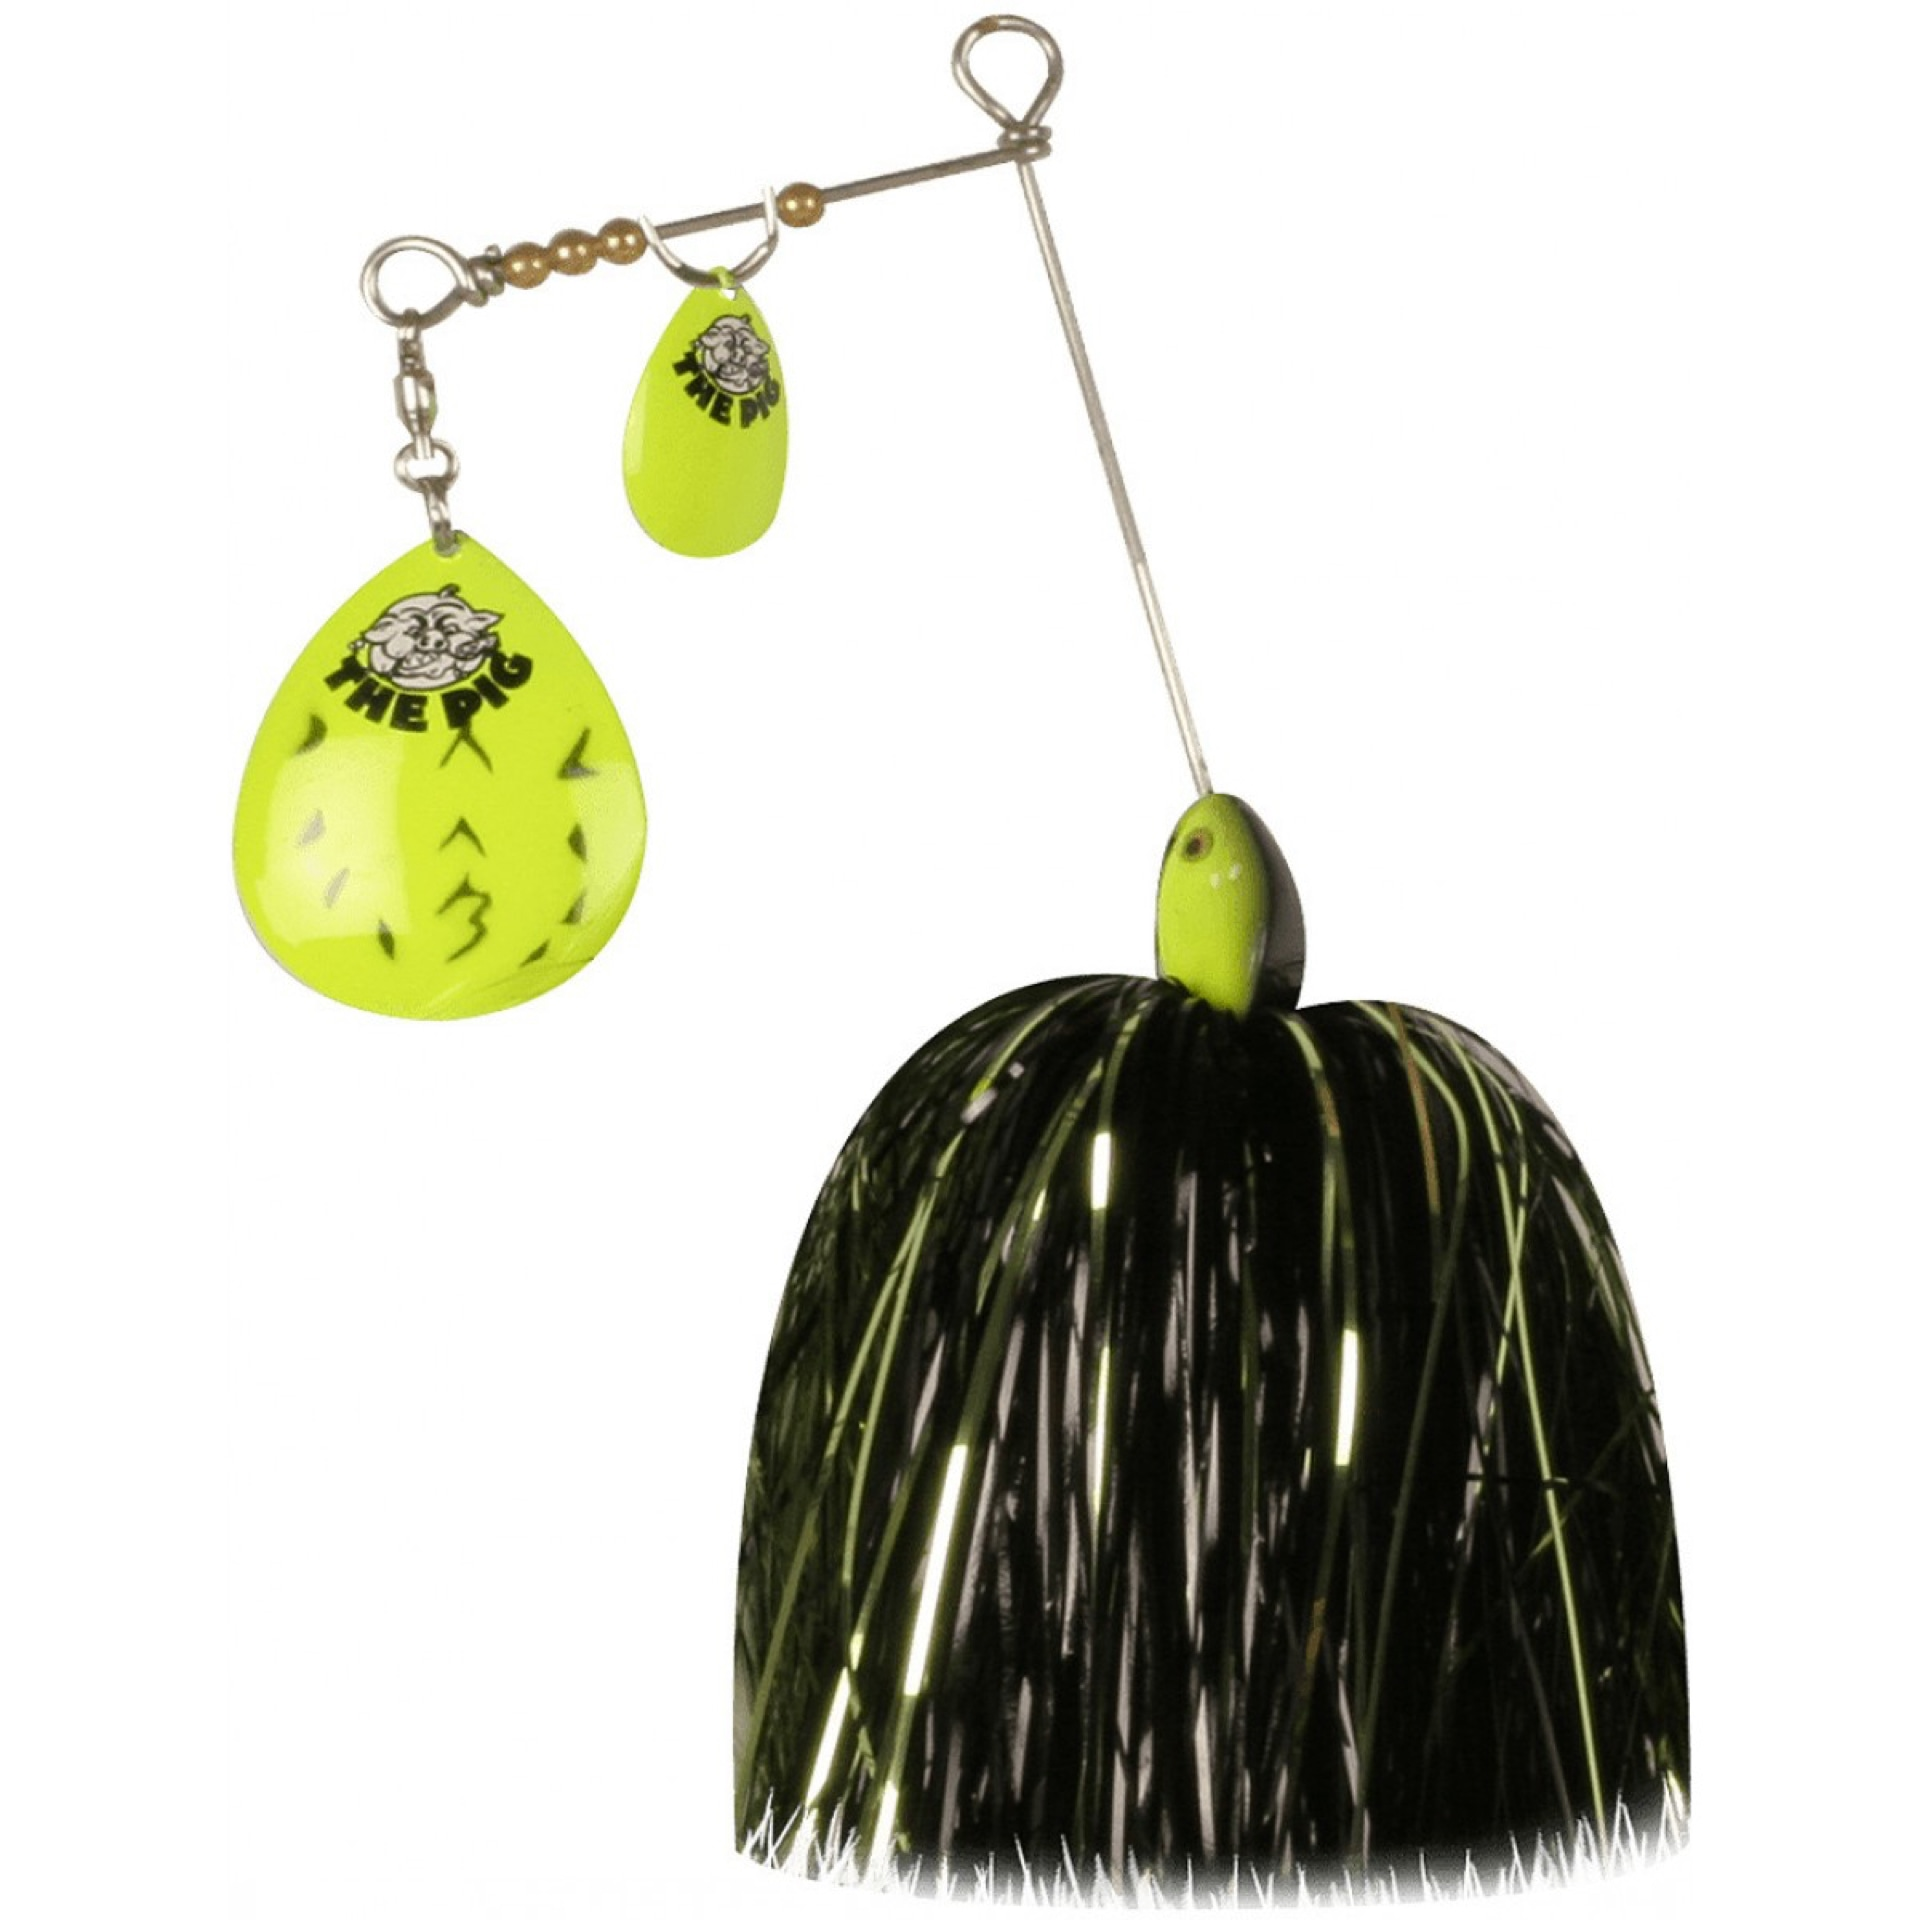 CWC Pig Spinnerbait Jr. Fluo Chart Black Dot - Green/Black/Silver